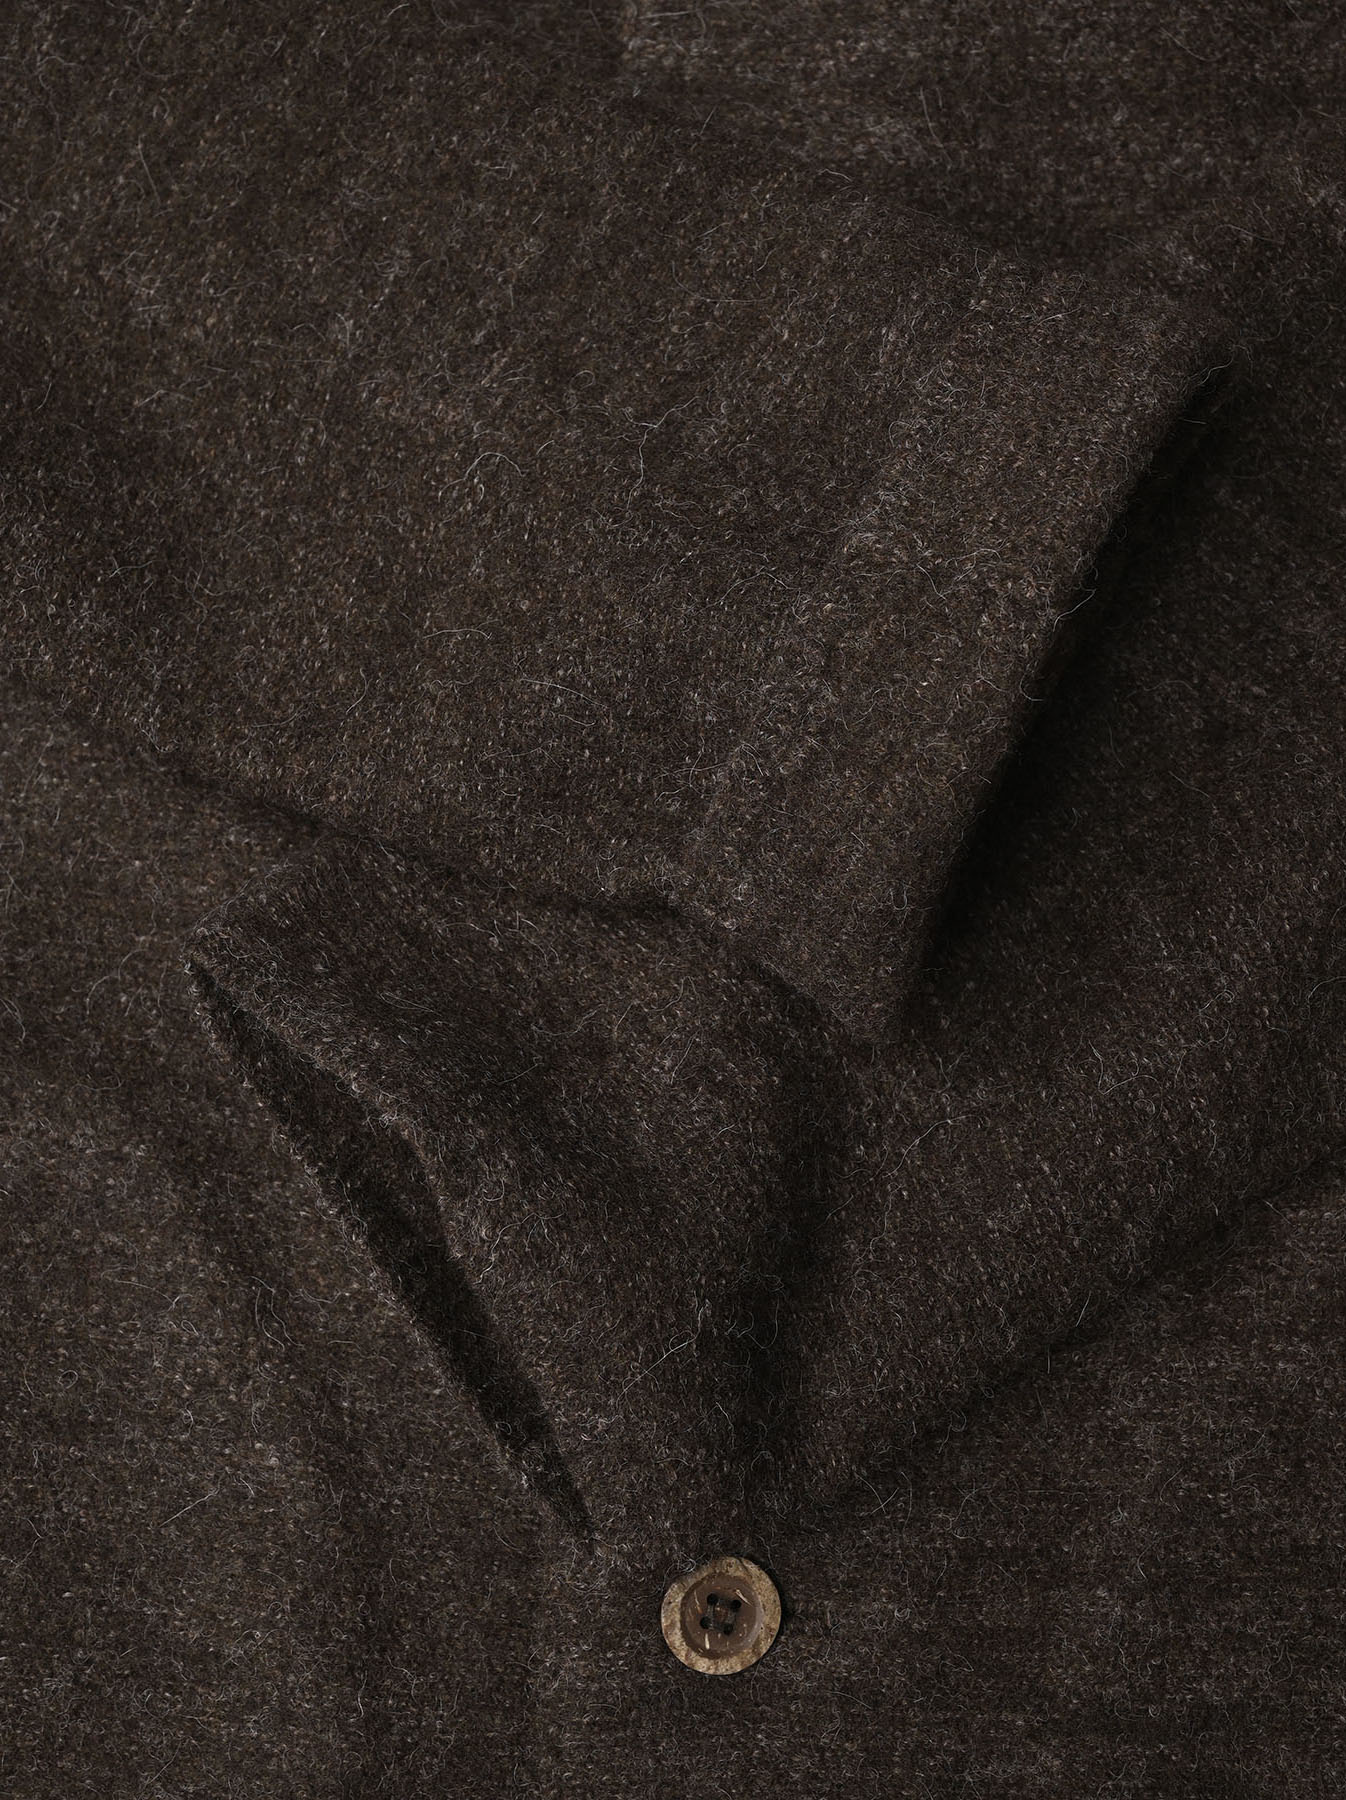 Boiled Wool Knit Coverall-7